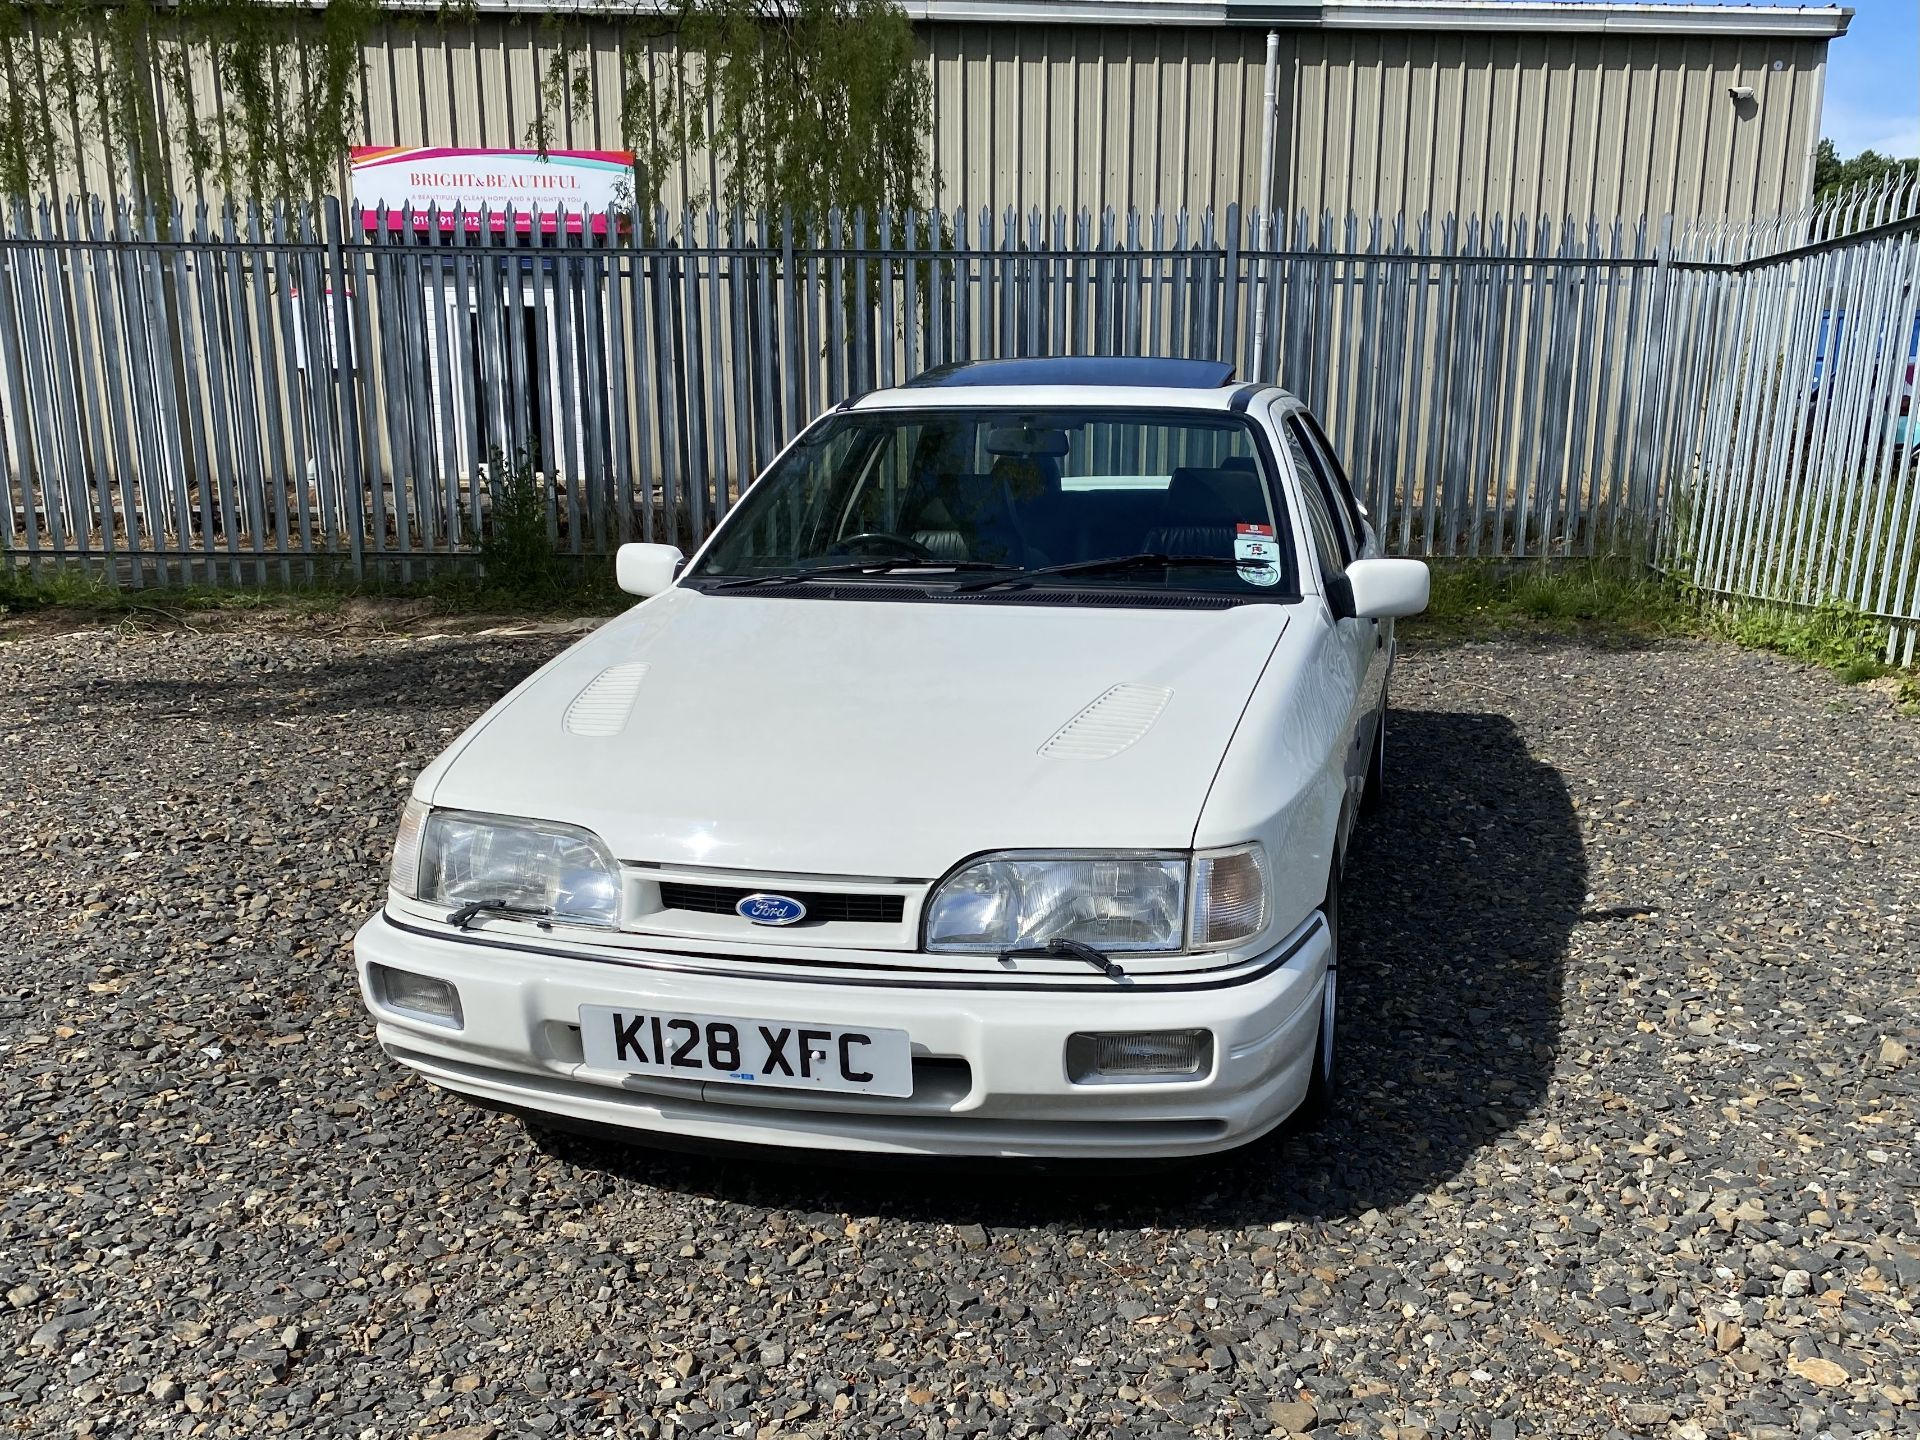 Ford Sierra Sapphire Cosworth 4x4 - Image 16 of 55